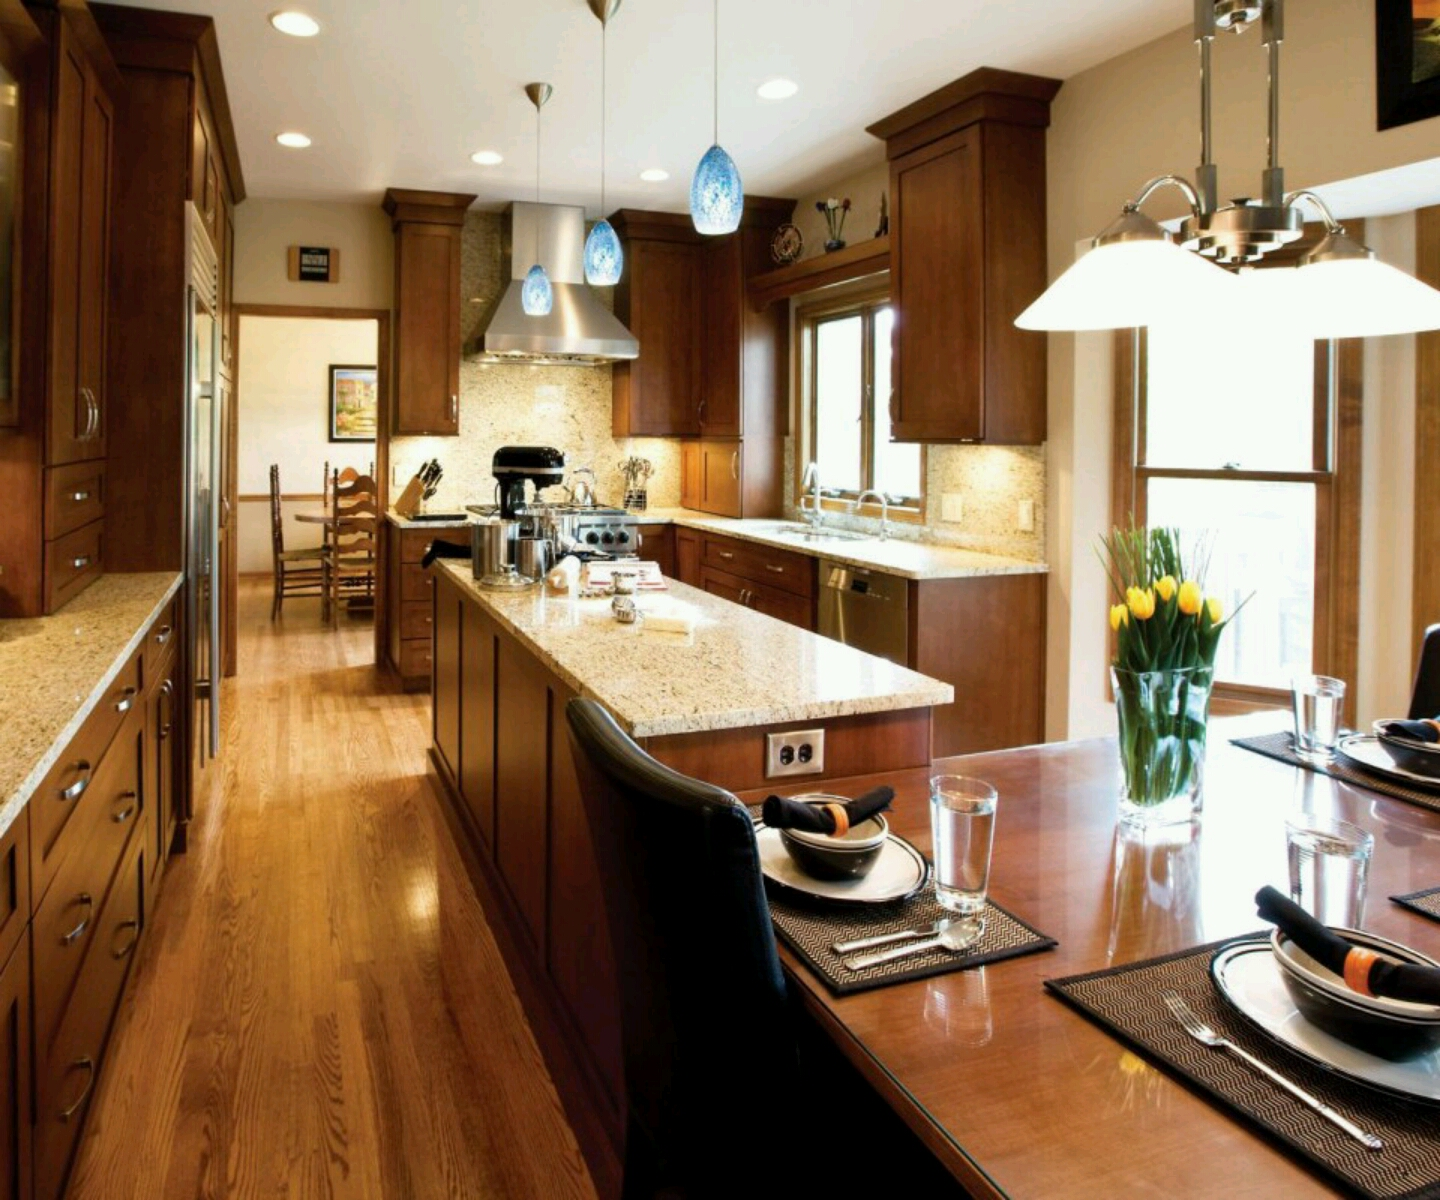 New home designs latest kitchen cabinets designs modern for New home kitchen designs